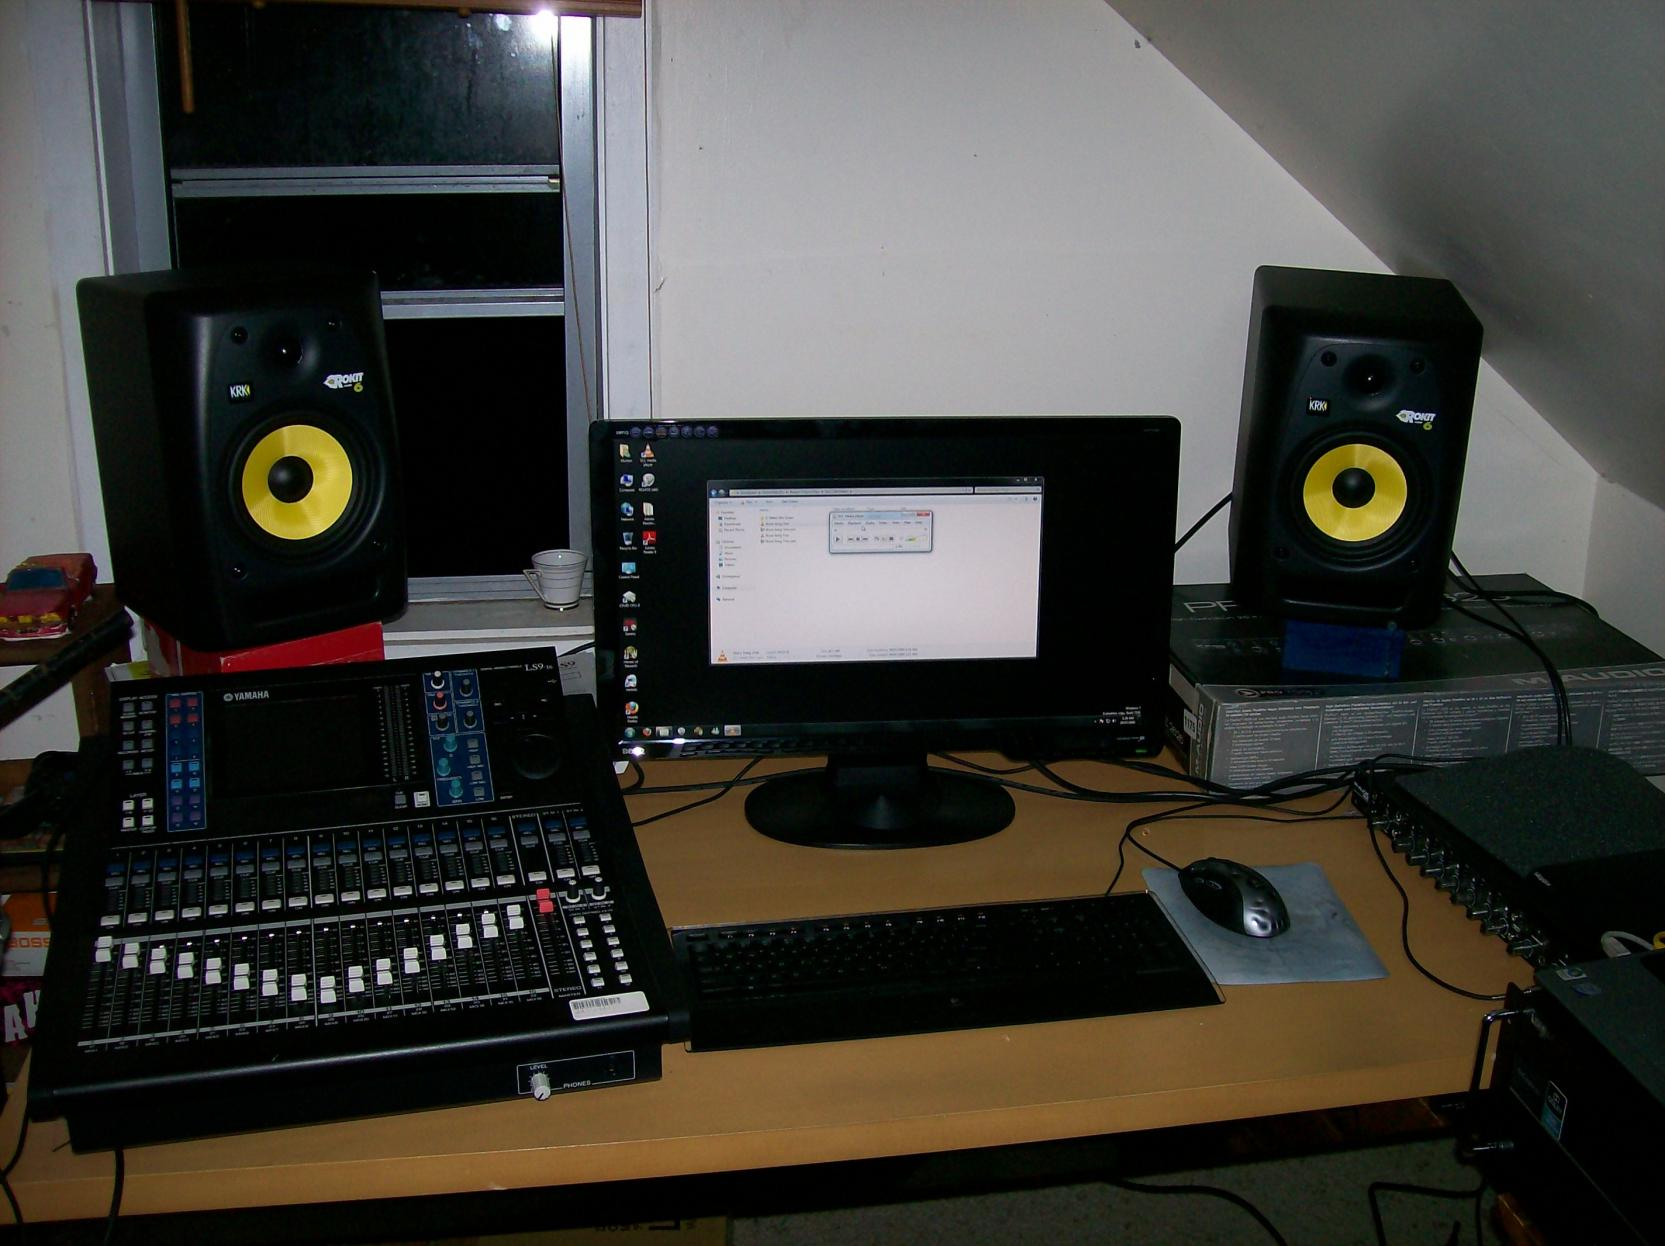 Swell Post Pictures Of Your Portable Recording Equipment Page 12 Largest Home Design Picture Inspirations Pitcheantrous